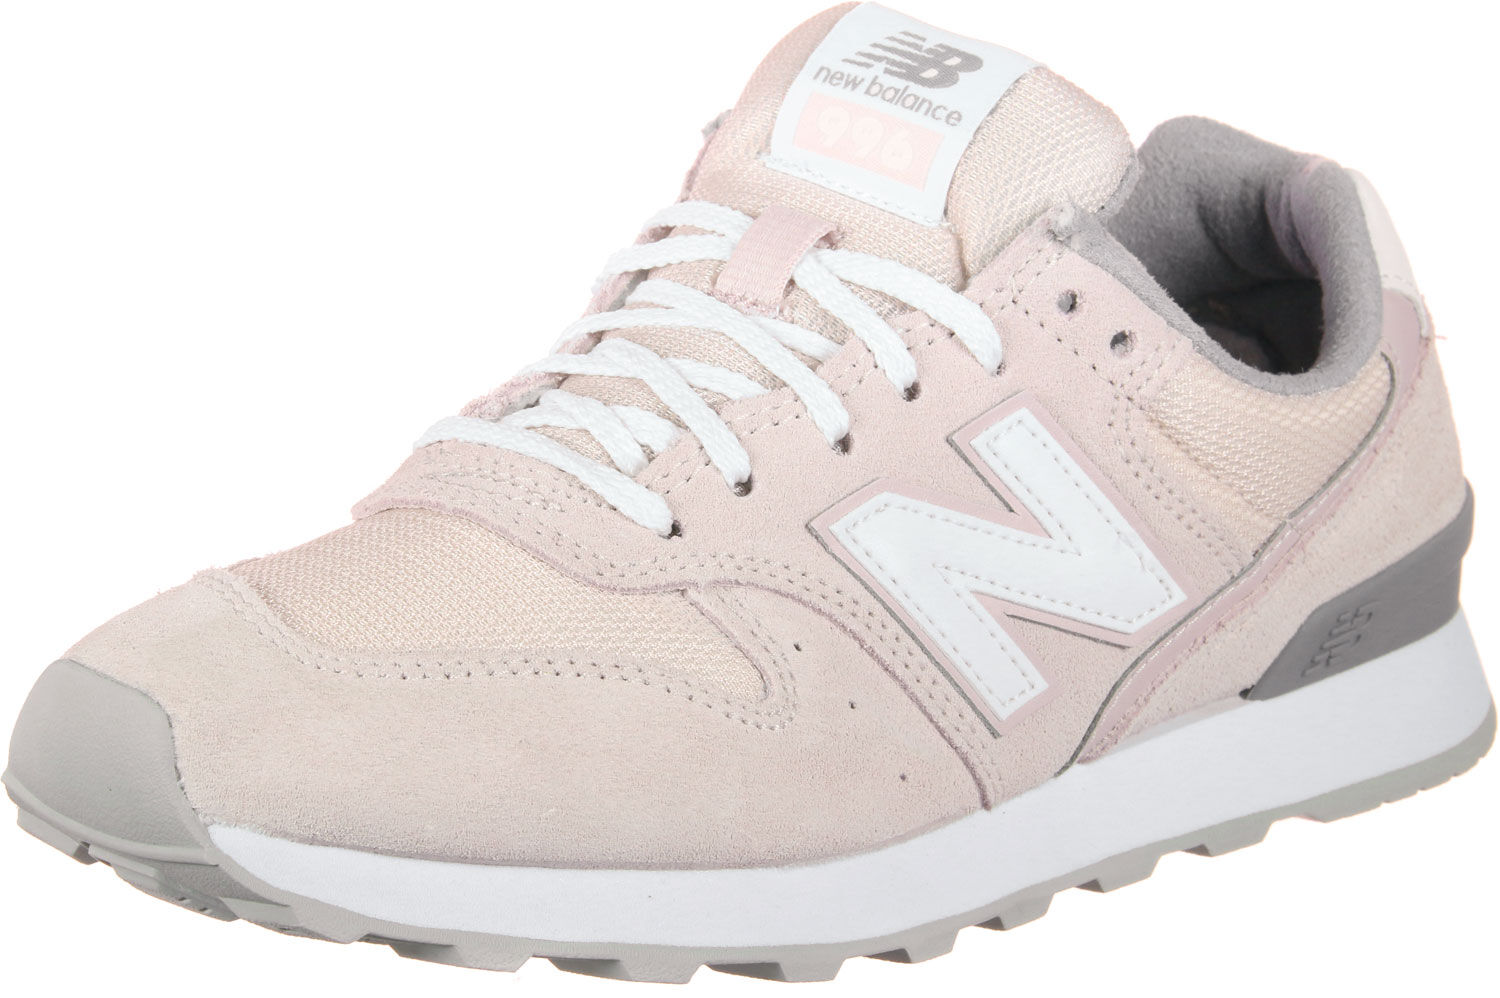 New Balance WR996 - Sneakers Low at Stylefile